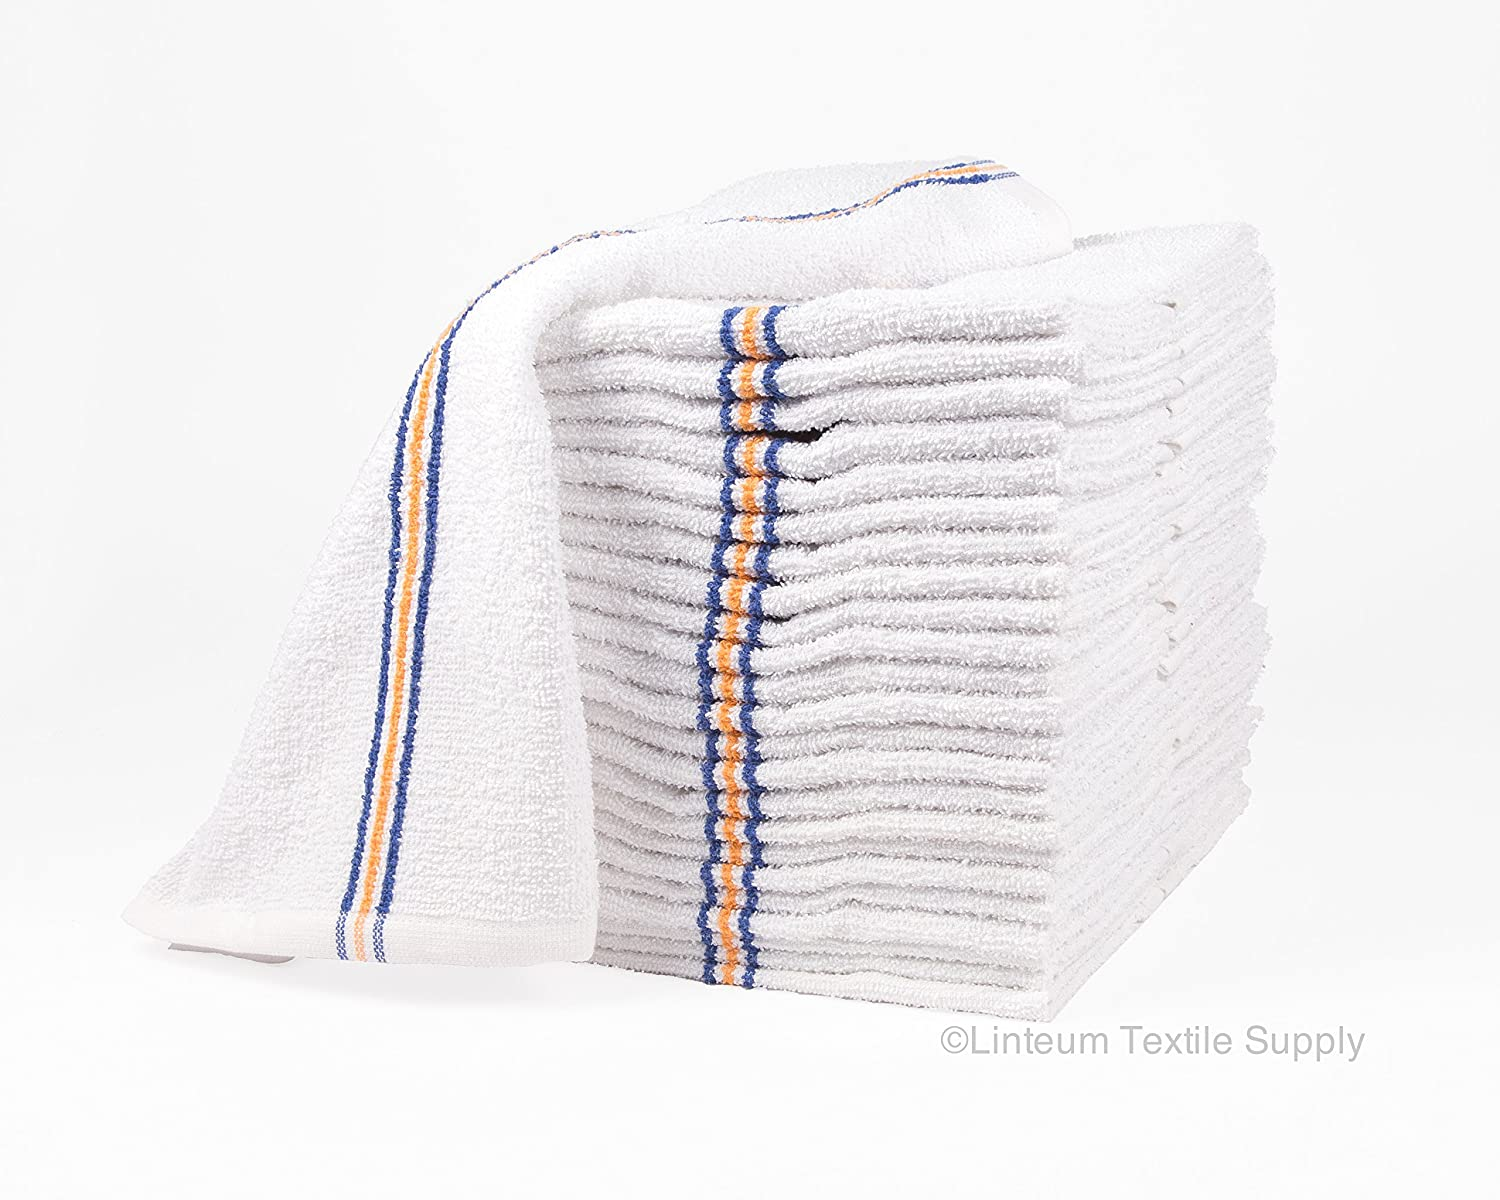 Linteum Textile (24-Pack, 16x19 in) Cotton Bar Towels SUPER MOPS Kitchen Towels, Strong & Durable